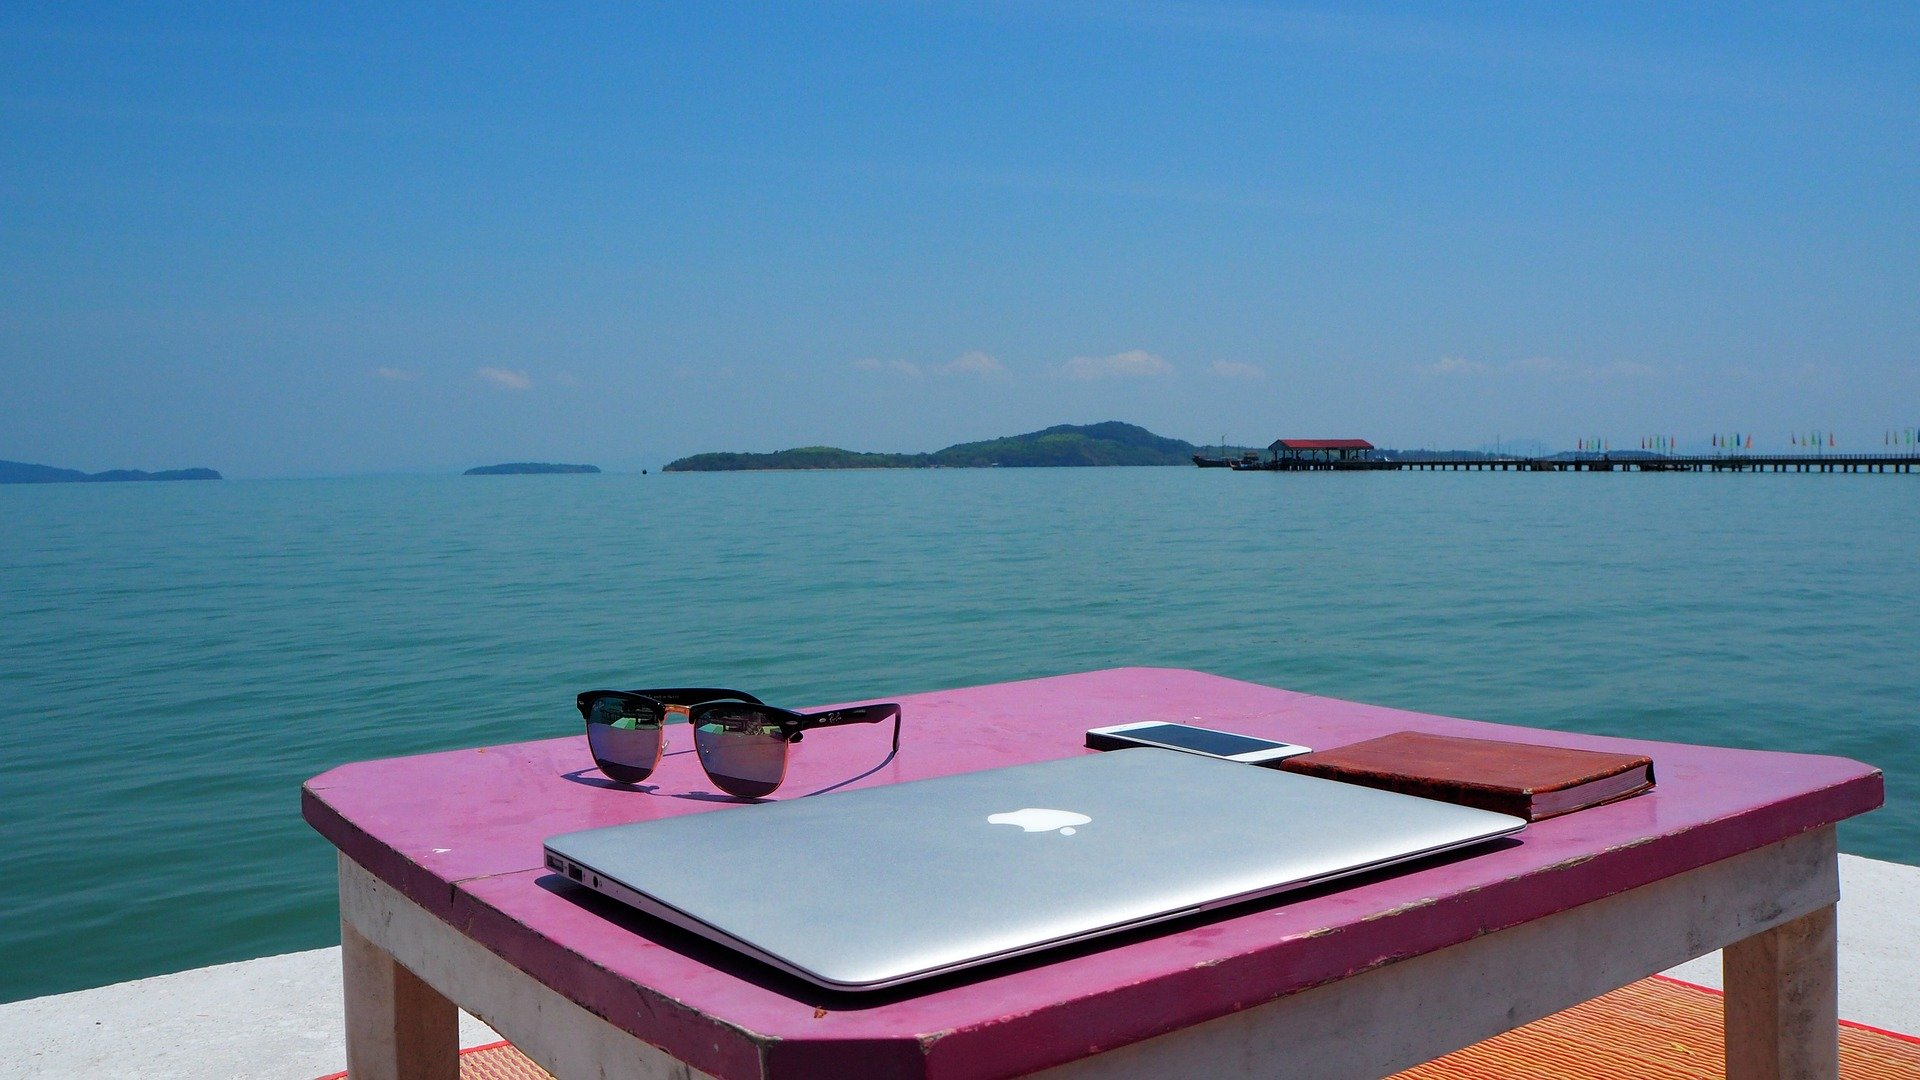 Worried Remote Working Will Impact Your Business? We've Got You Covered.